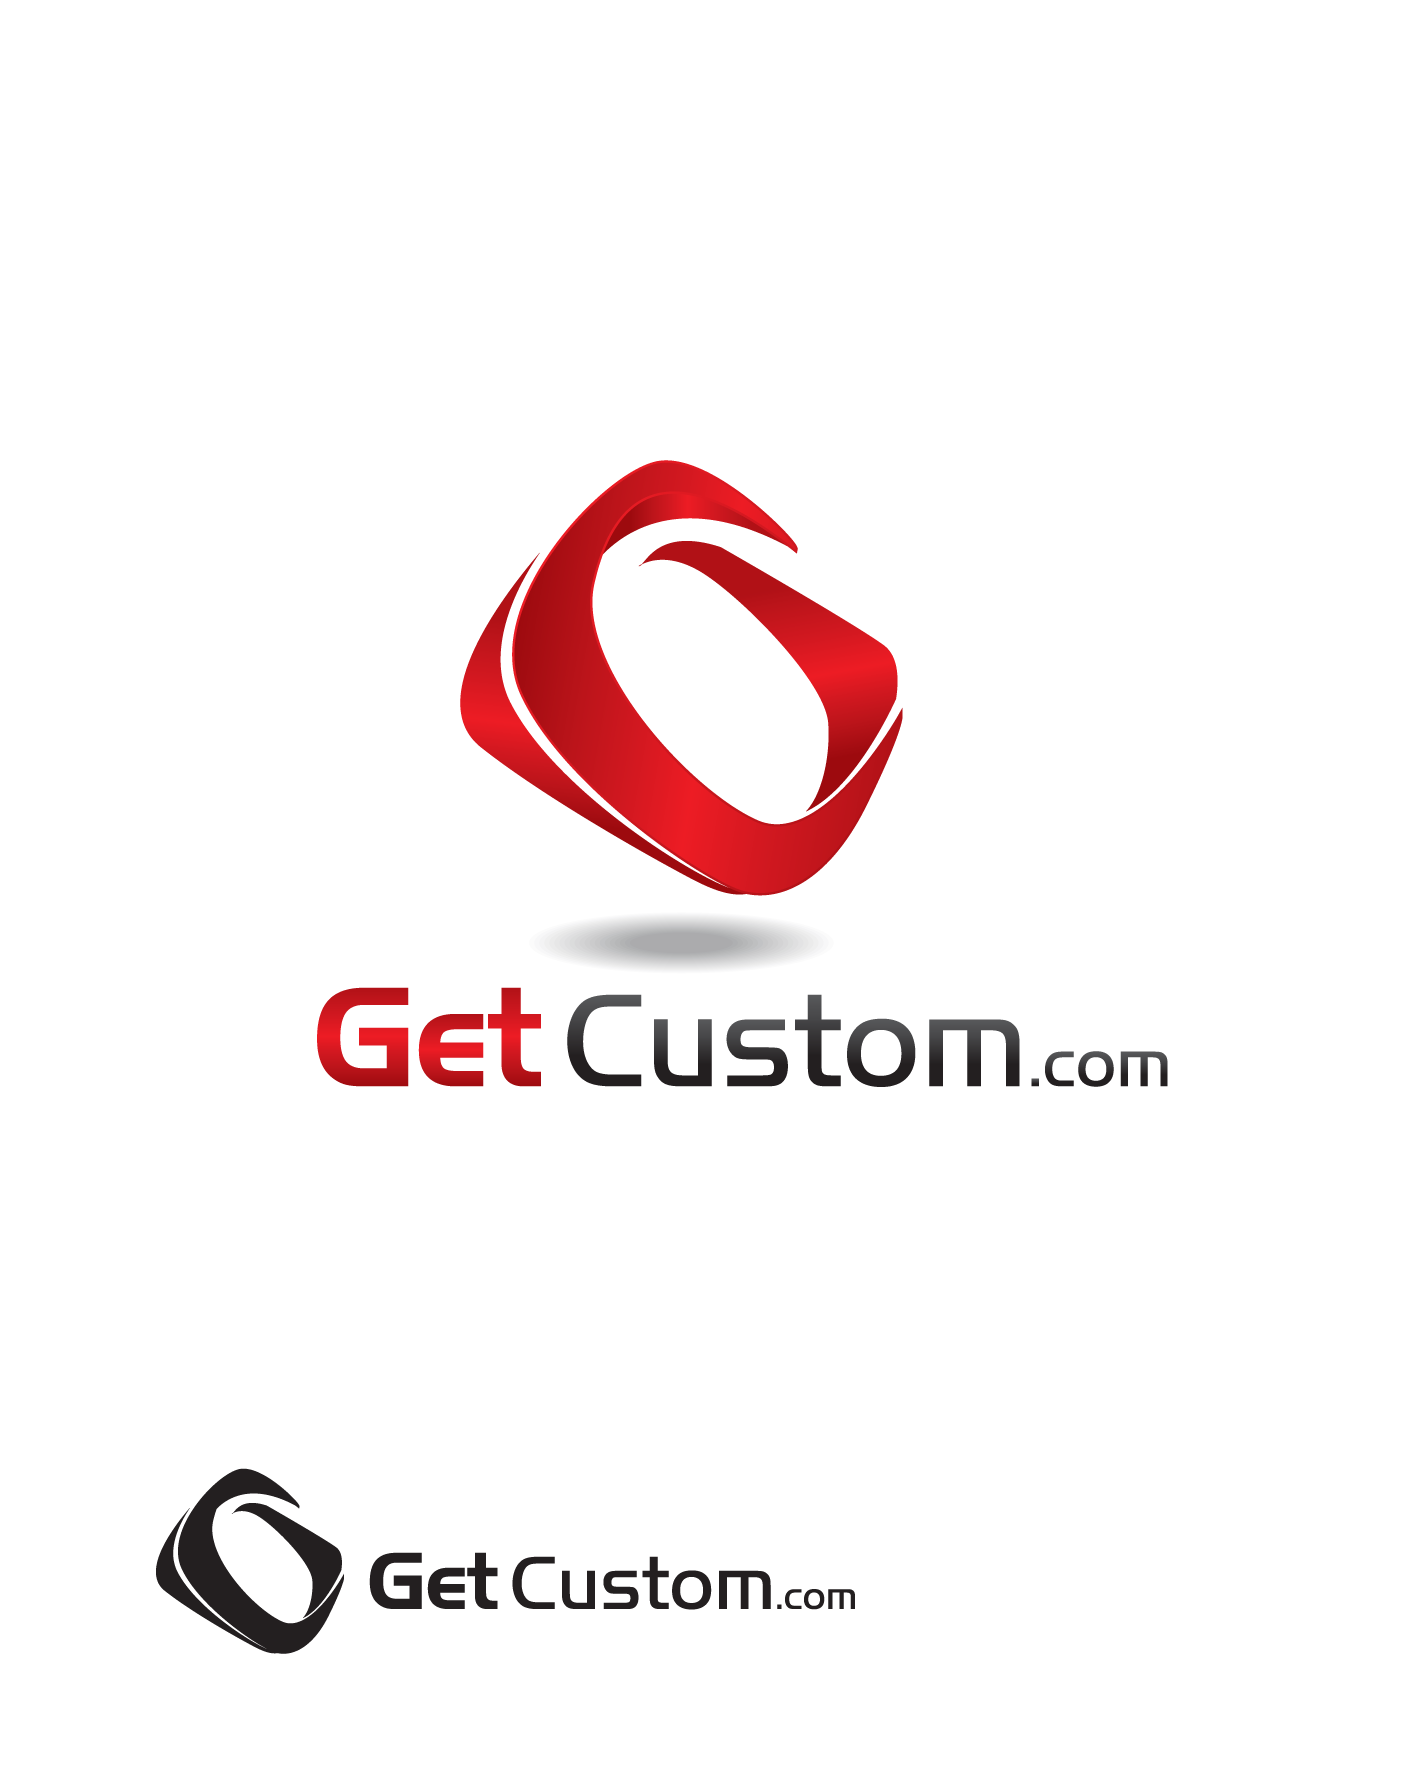 Logo Design by Yusuf Nurochim - Entry No. 43 in the Logo Design Contest getcustom.com Logo Design.